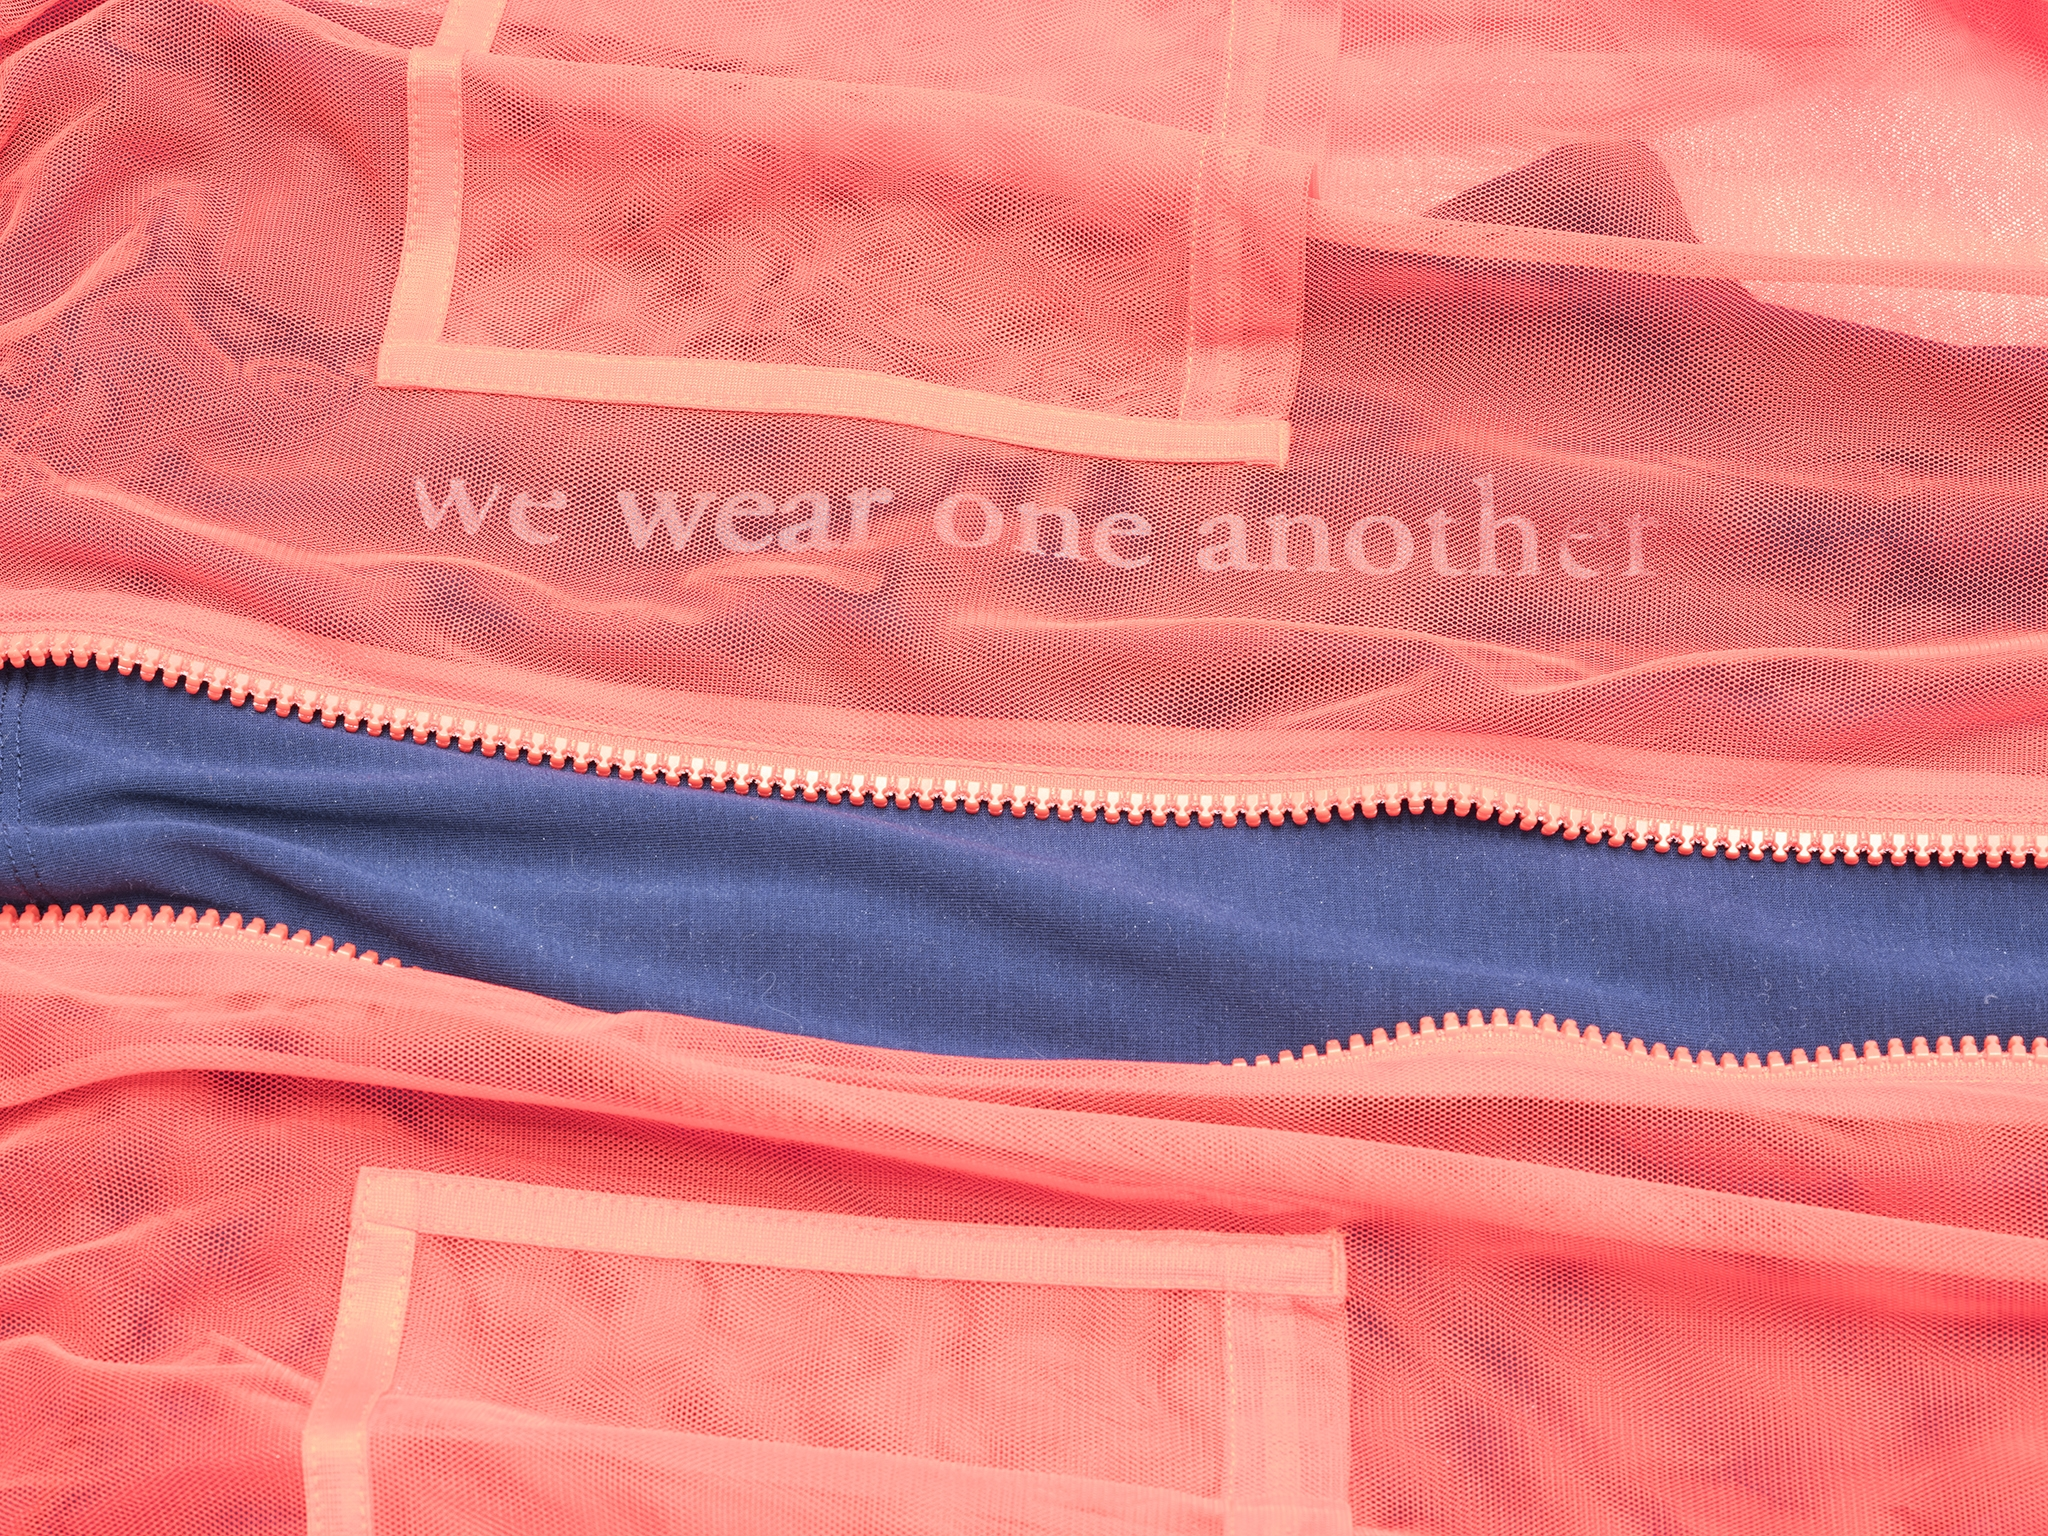 ​Tanya Lukin Linklater, We wear one another (detail), 2019, attire for performance, silkscreen, dimensions variable by